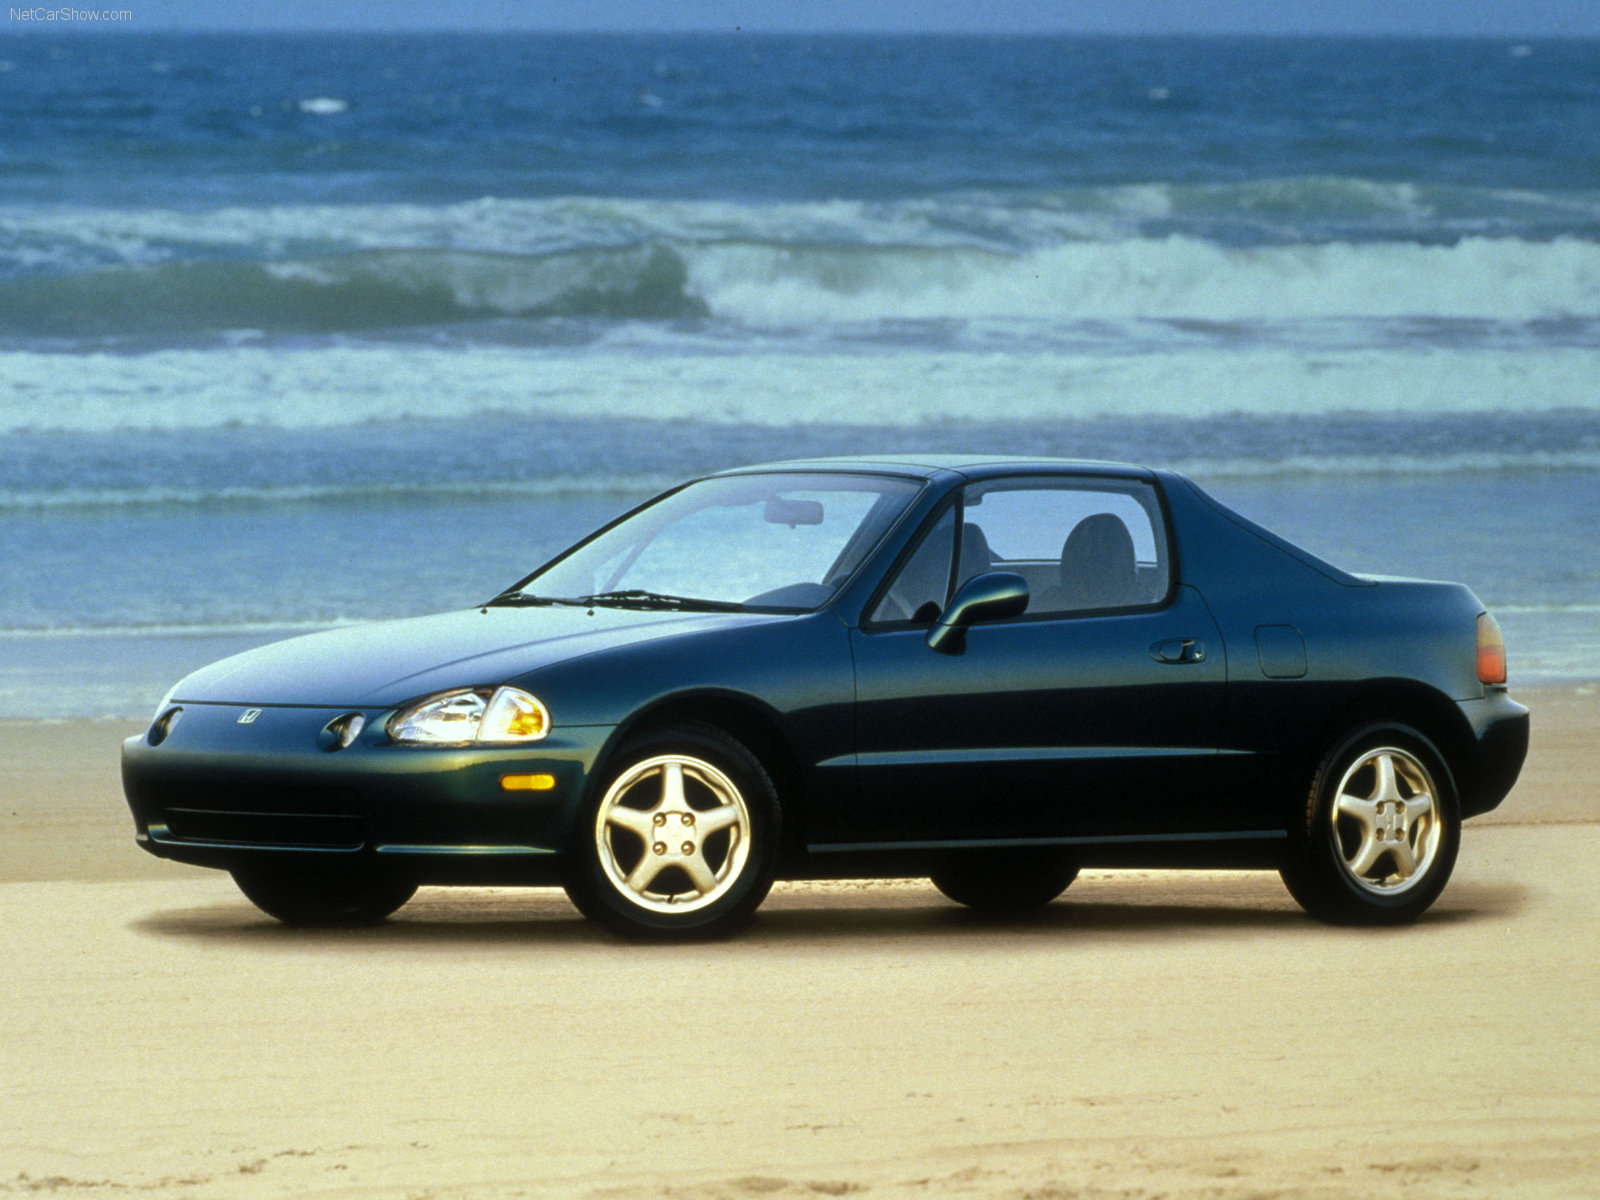 3dtuning of honda cr x del sol sir coupe 1995 unique on line car configurator for. Black Bedroom Furniture Sets. Home Design Ideas